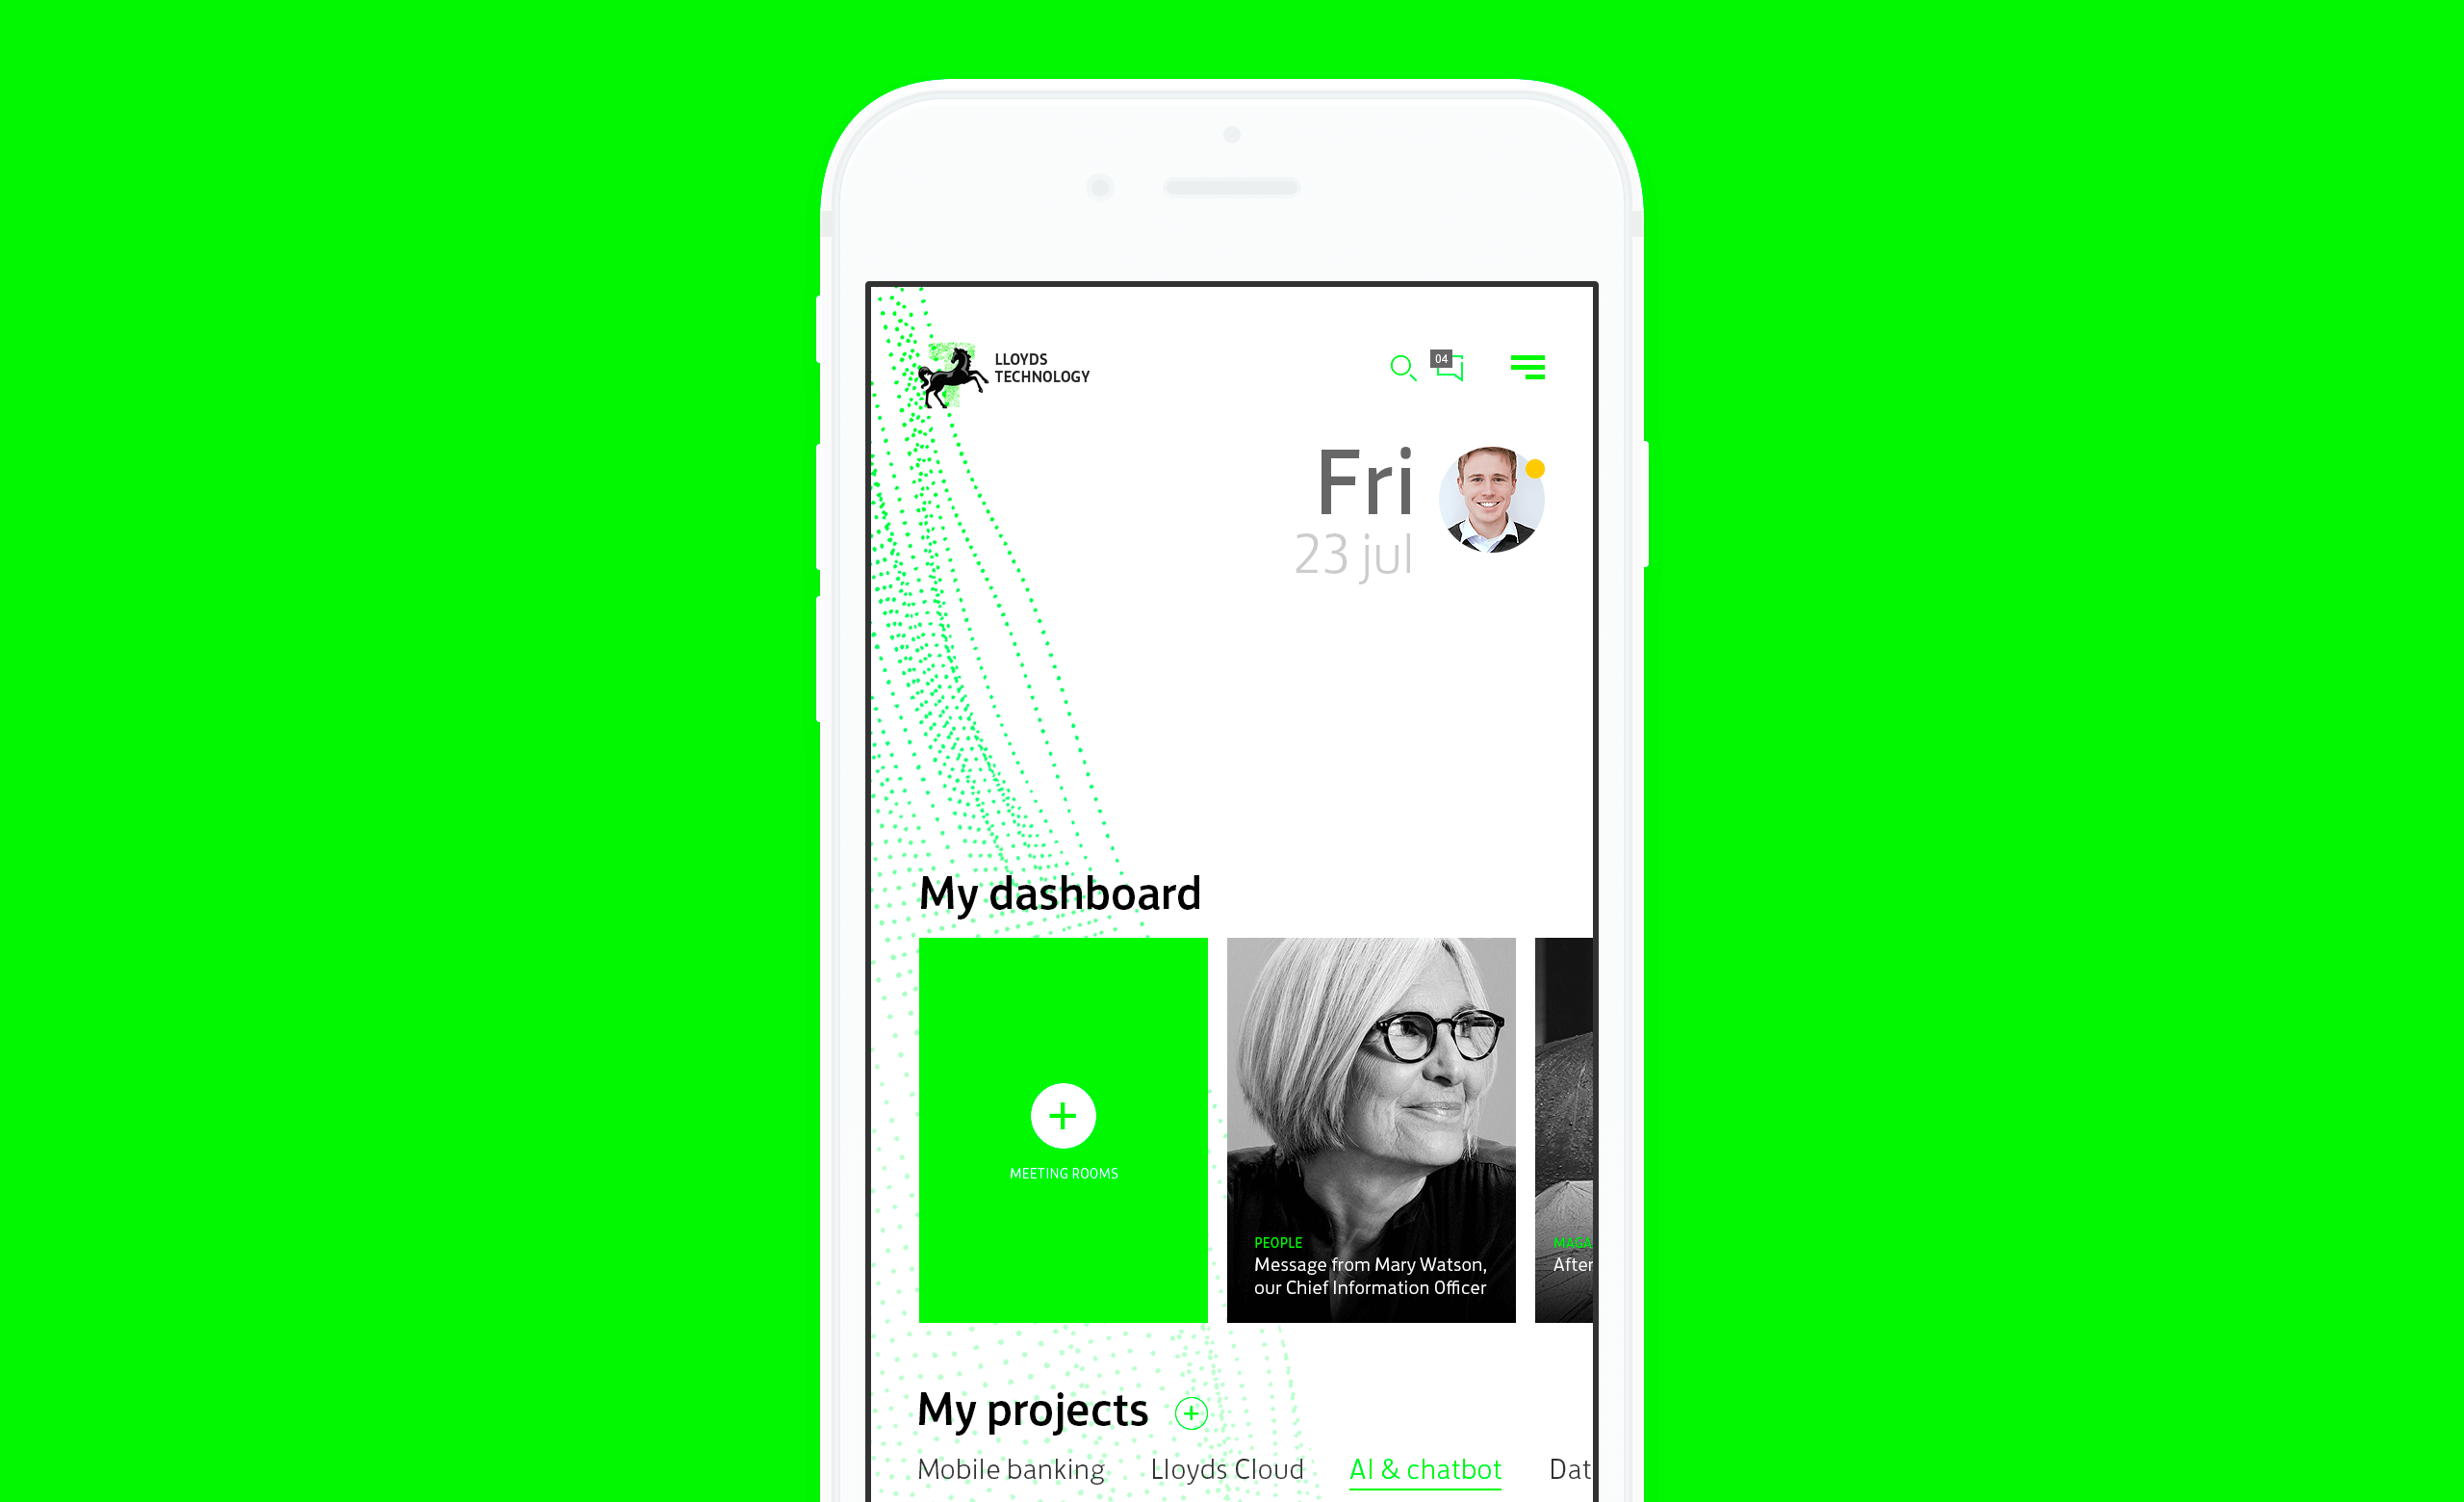 LLOYDS-GroupTech-mobile-connected_spaces_app-01b